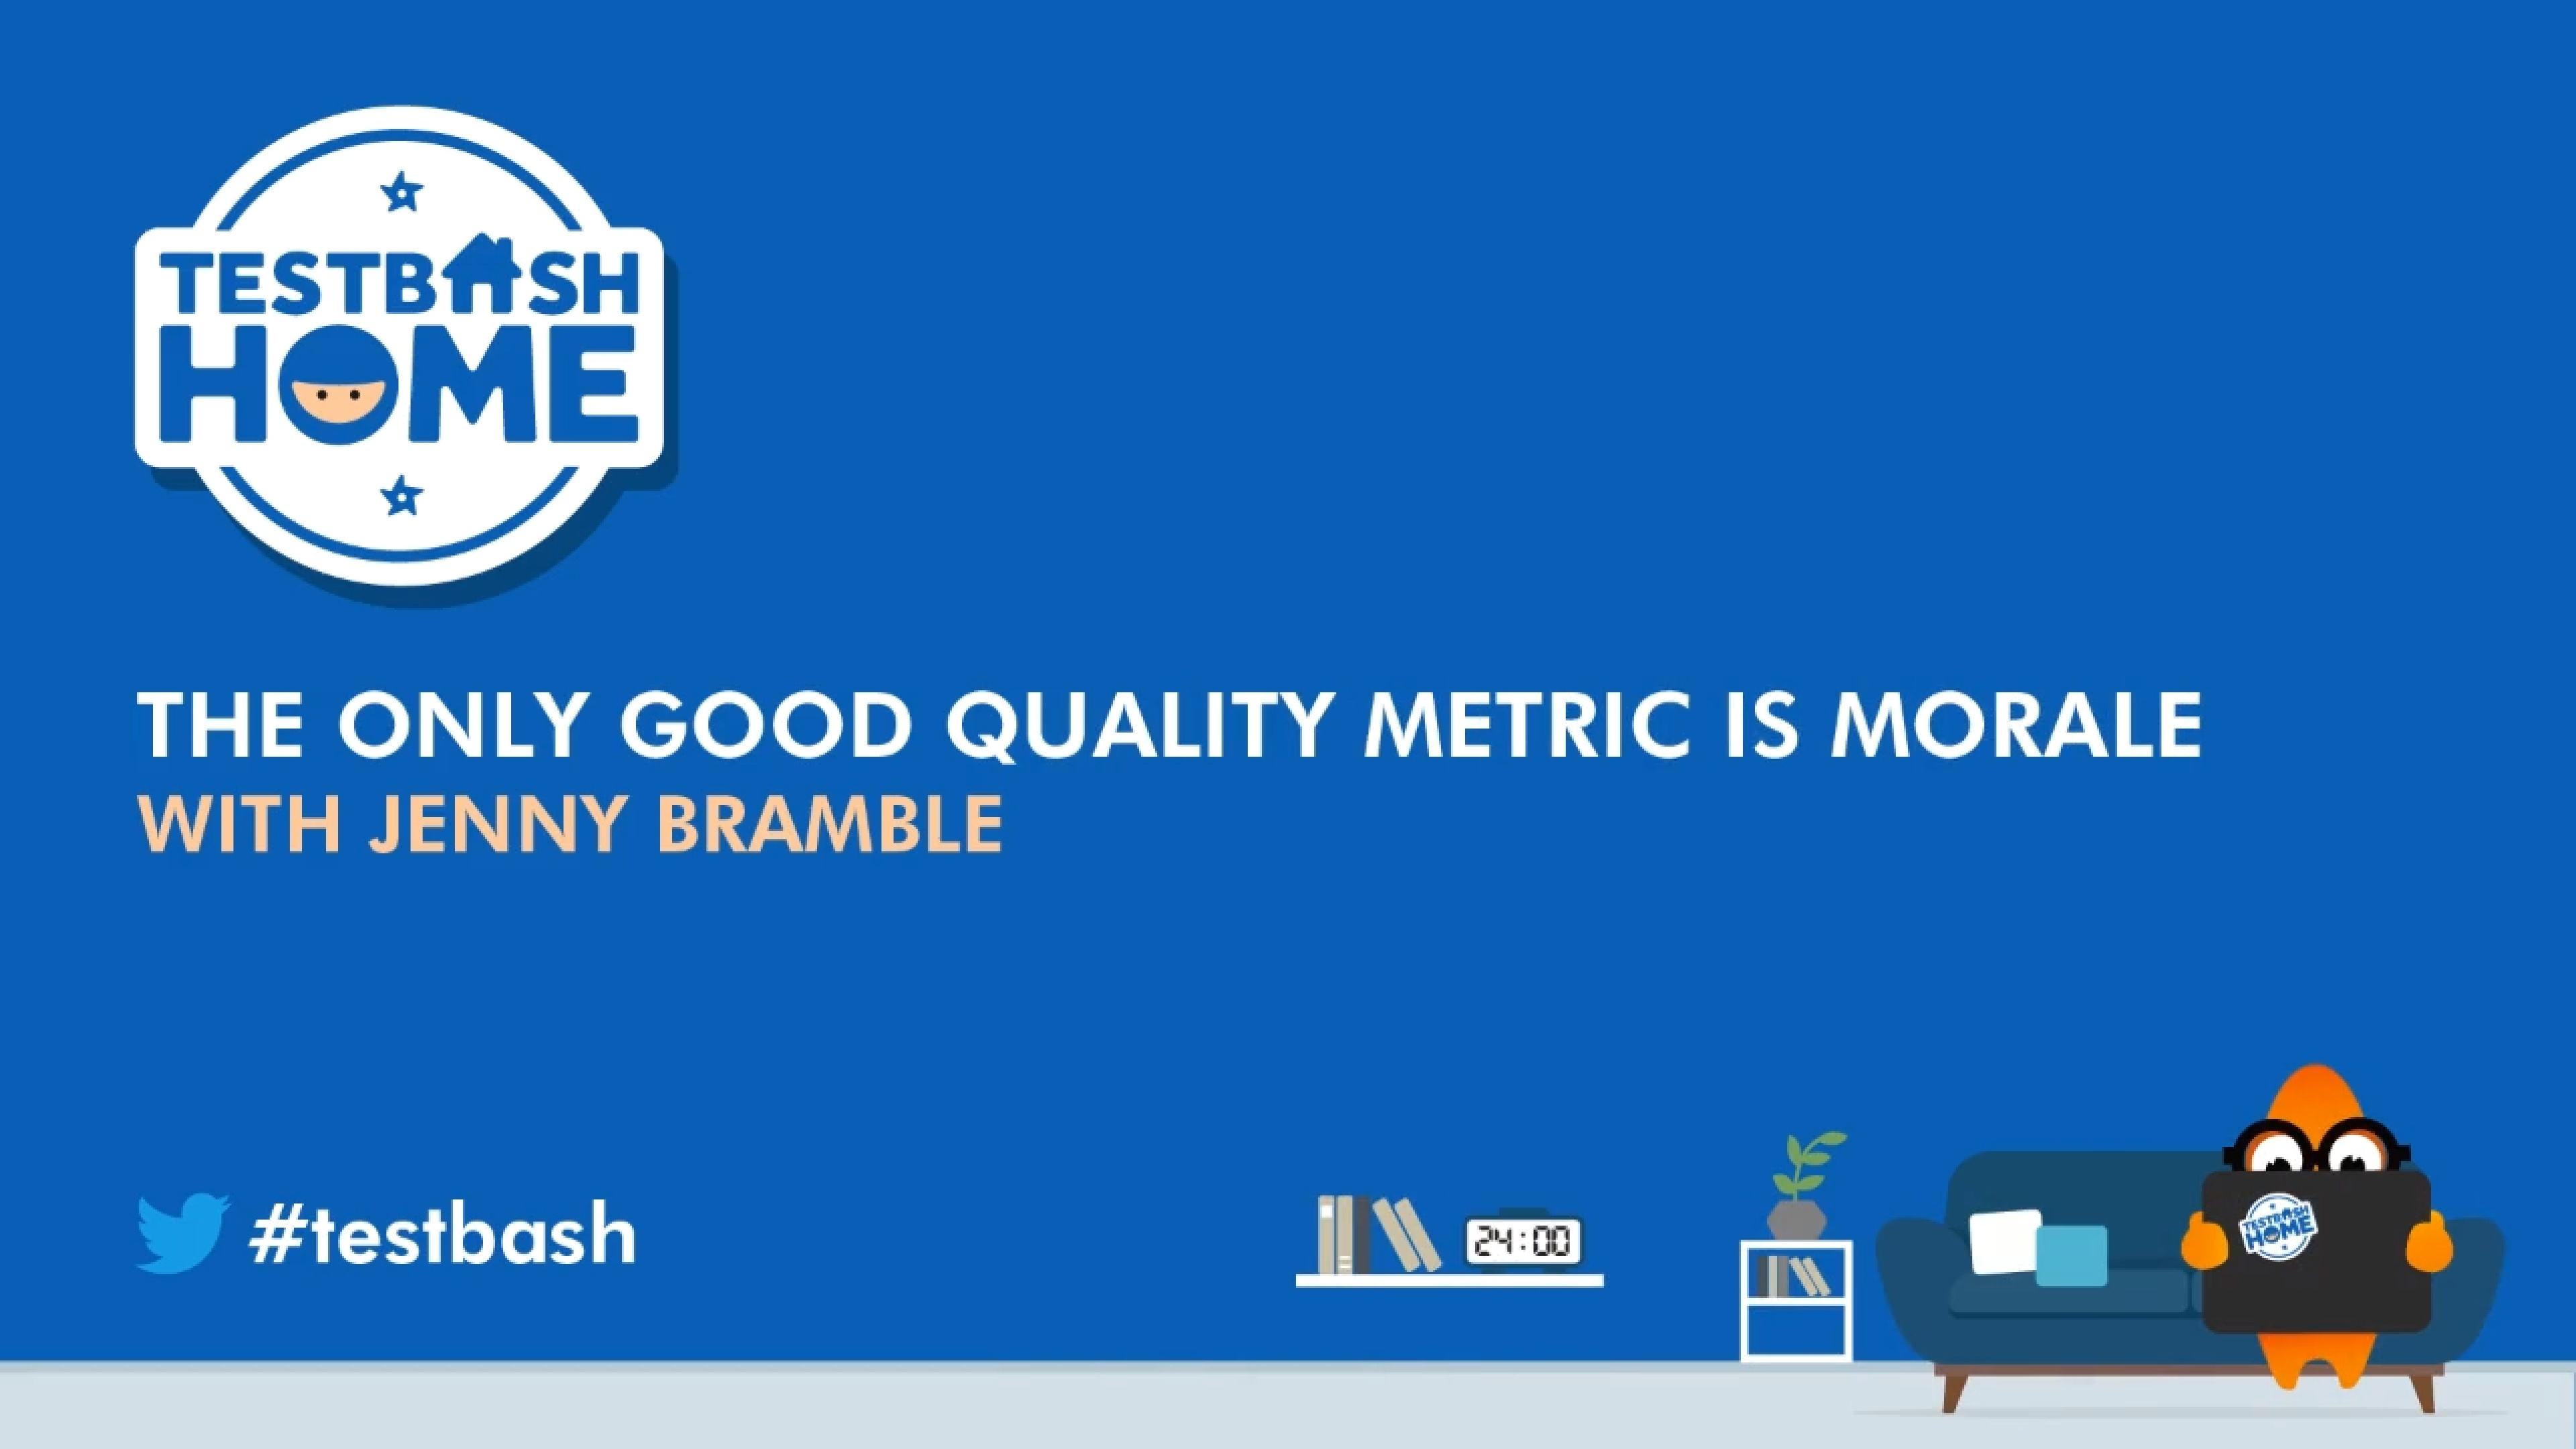 The Only Good Quality Metric is Morale - Jenny Bramble